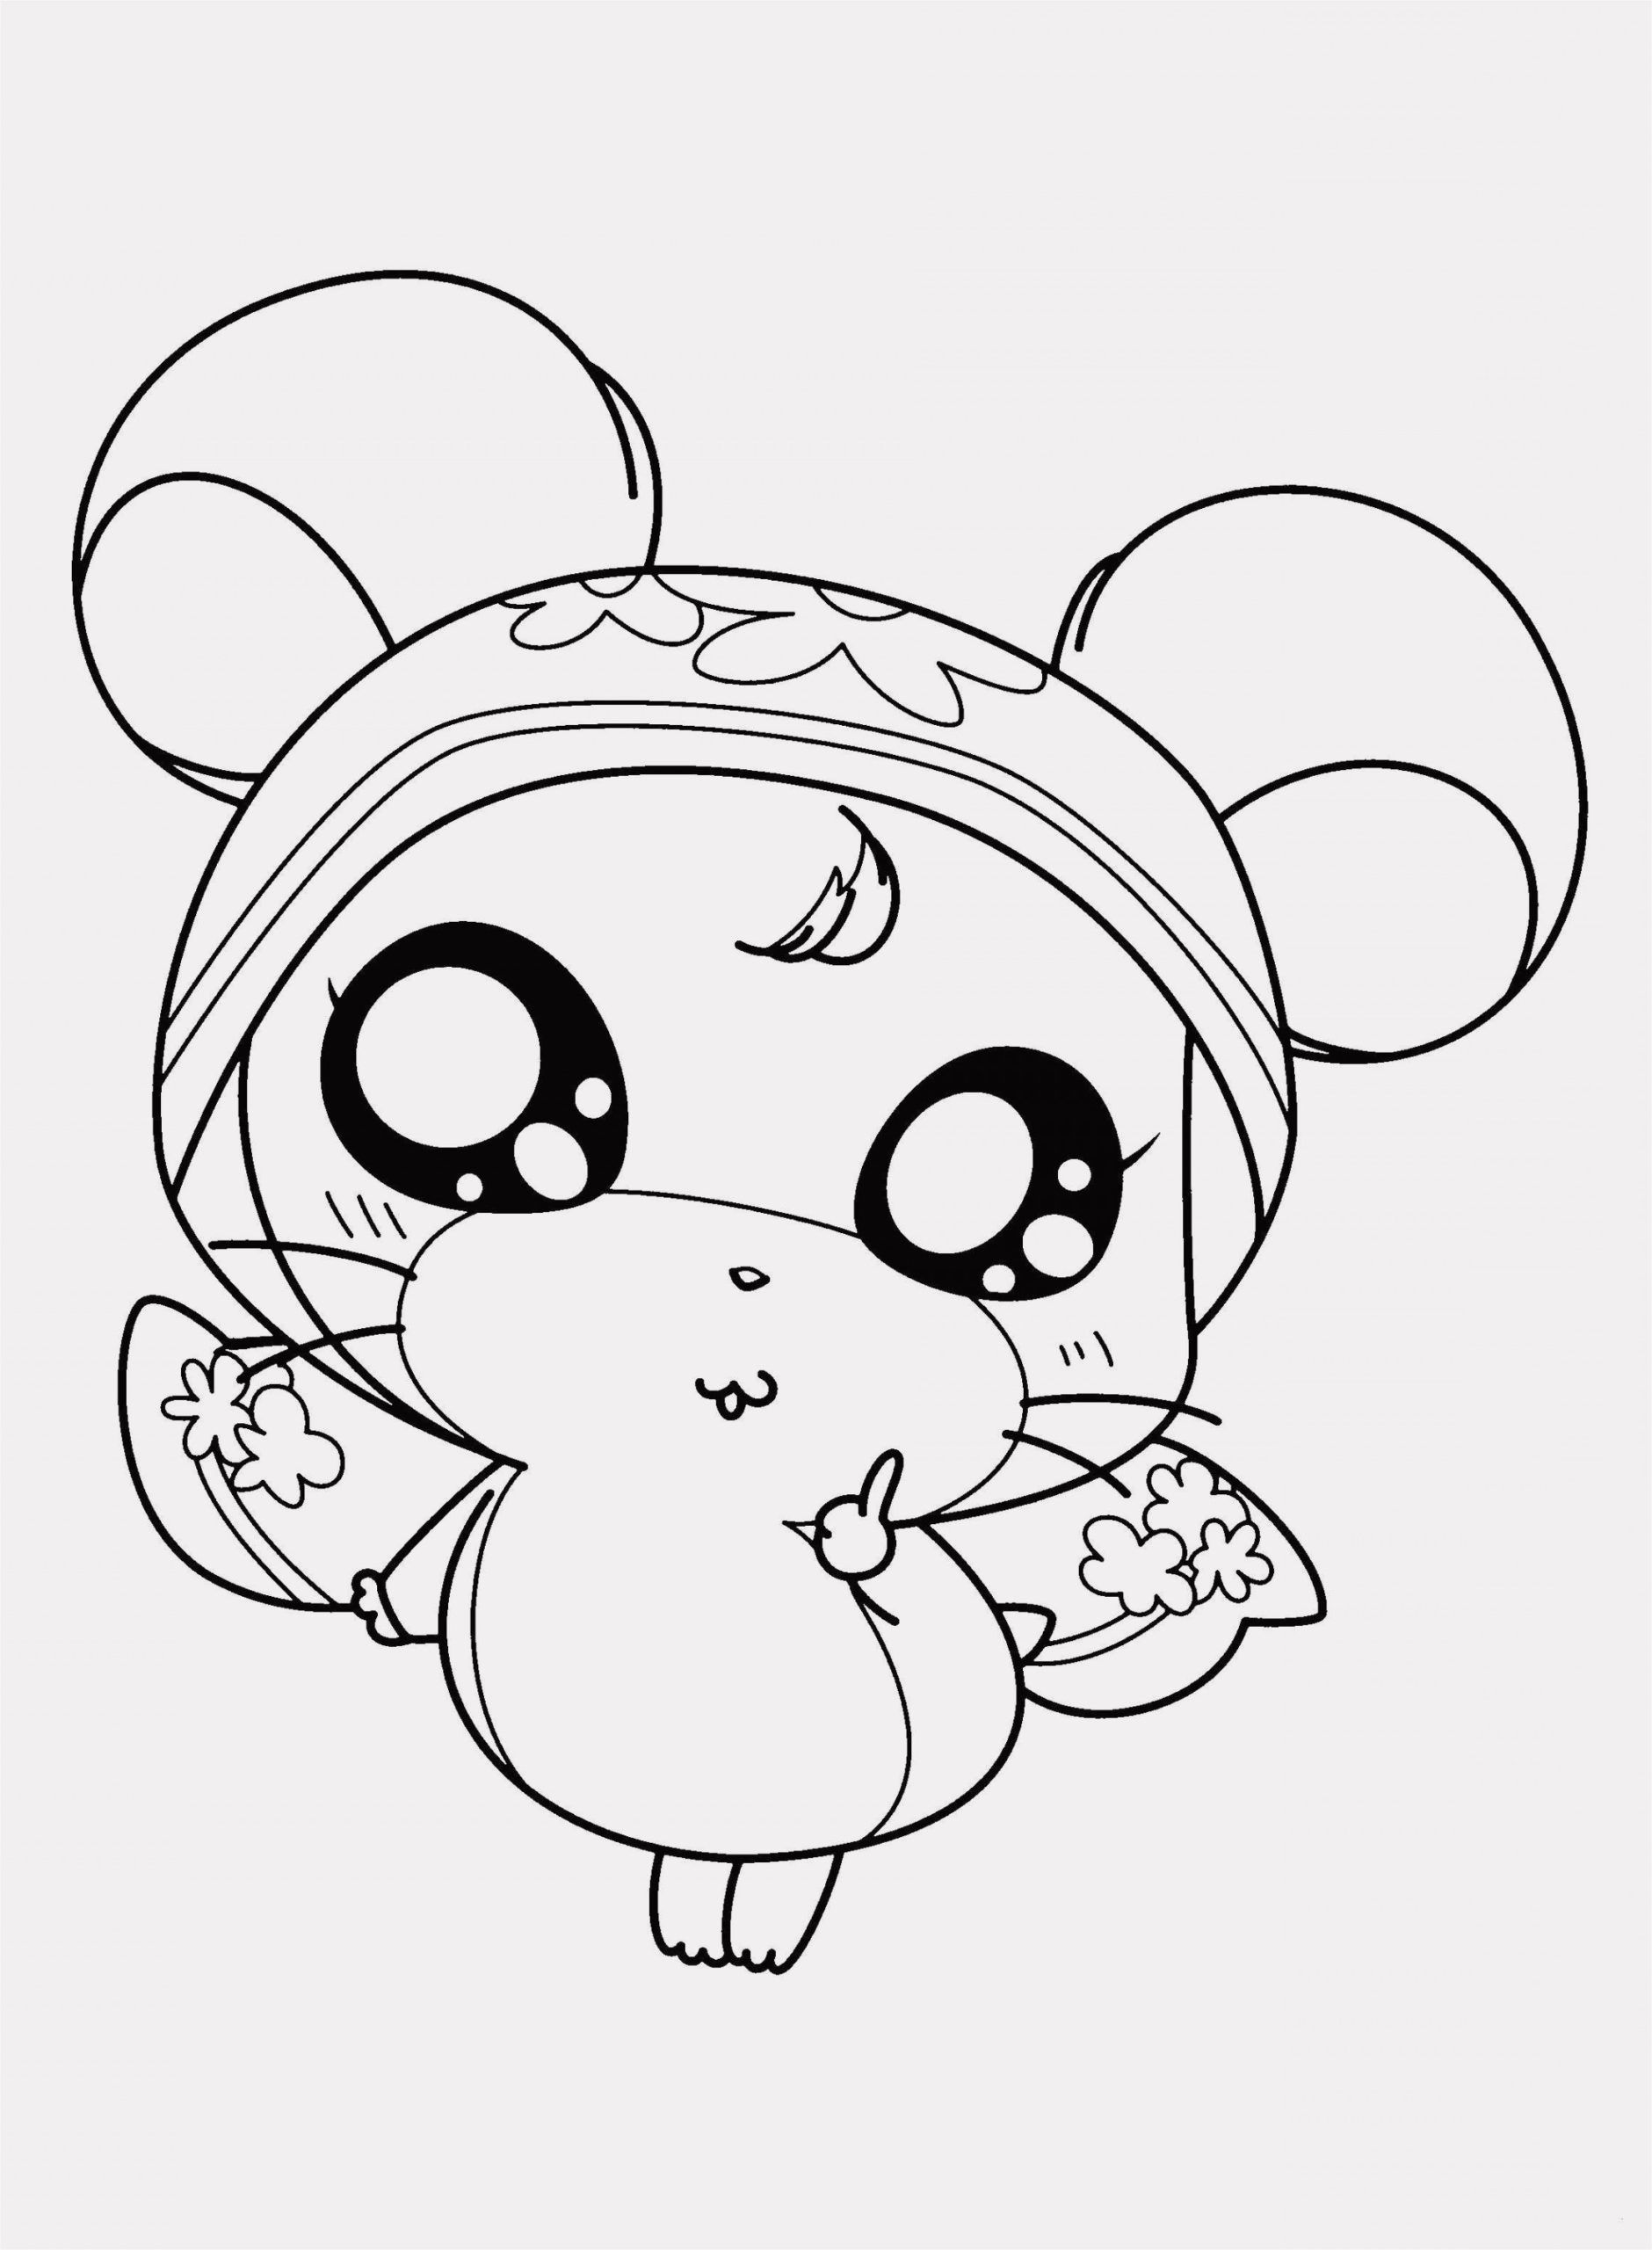 15 Free Hello Kitty Easter Coloring Pages Bird Coloring Pages Halloween Coloring Pages Animal Coloring Pages